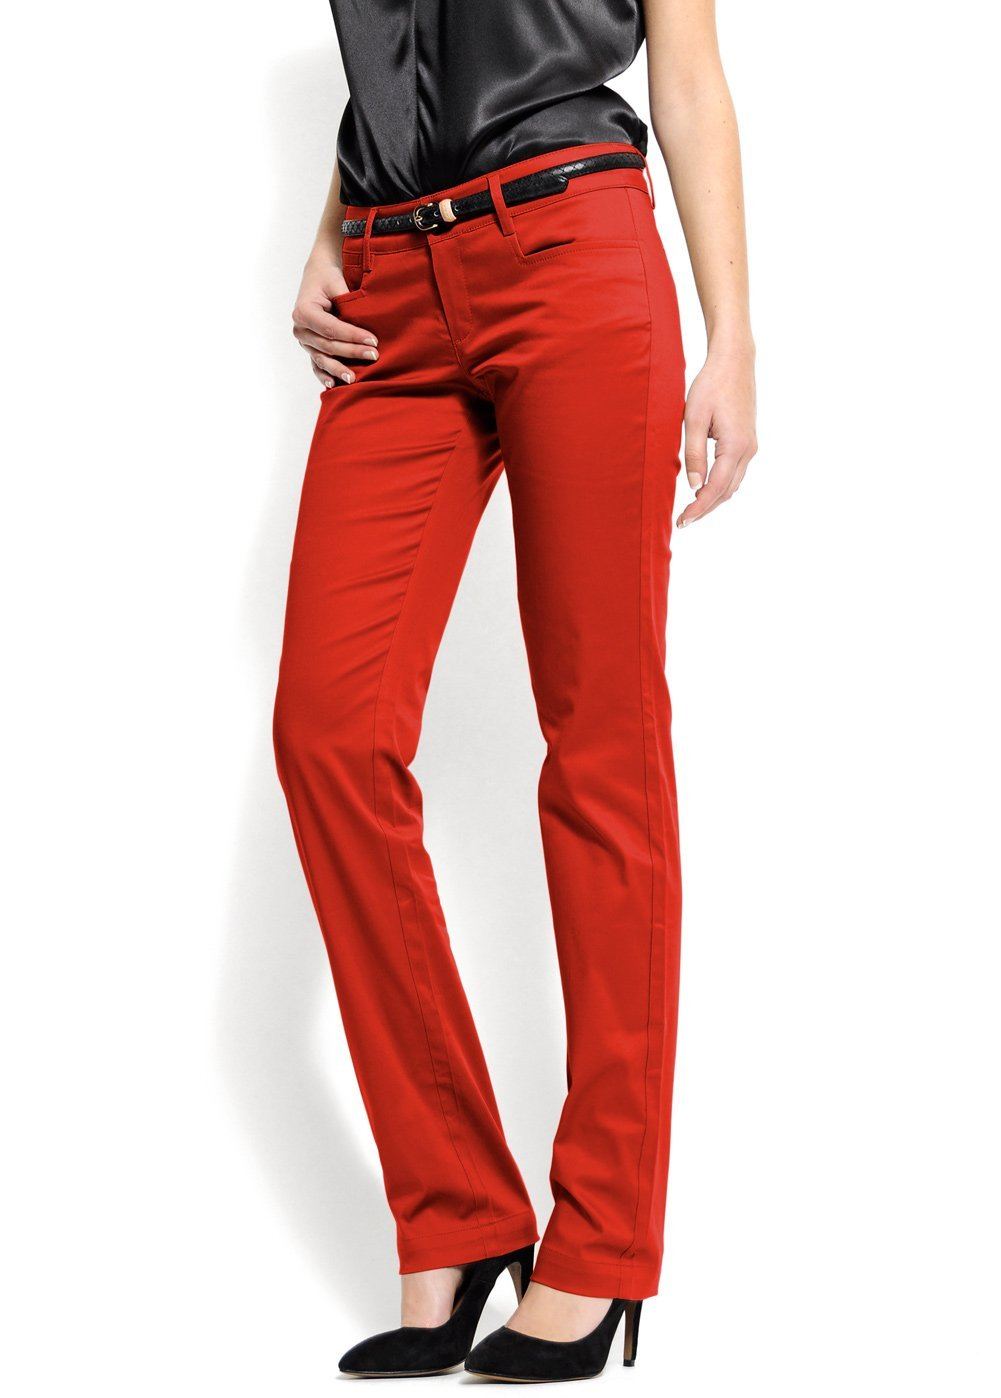 Original Sarah Calhoun, Who Founded Both The Red Ants Pants Womens Workwear